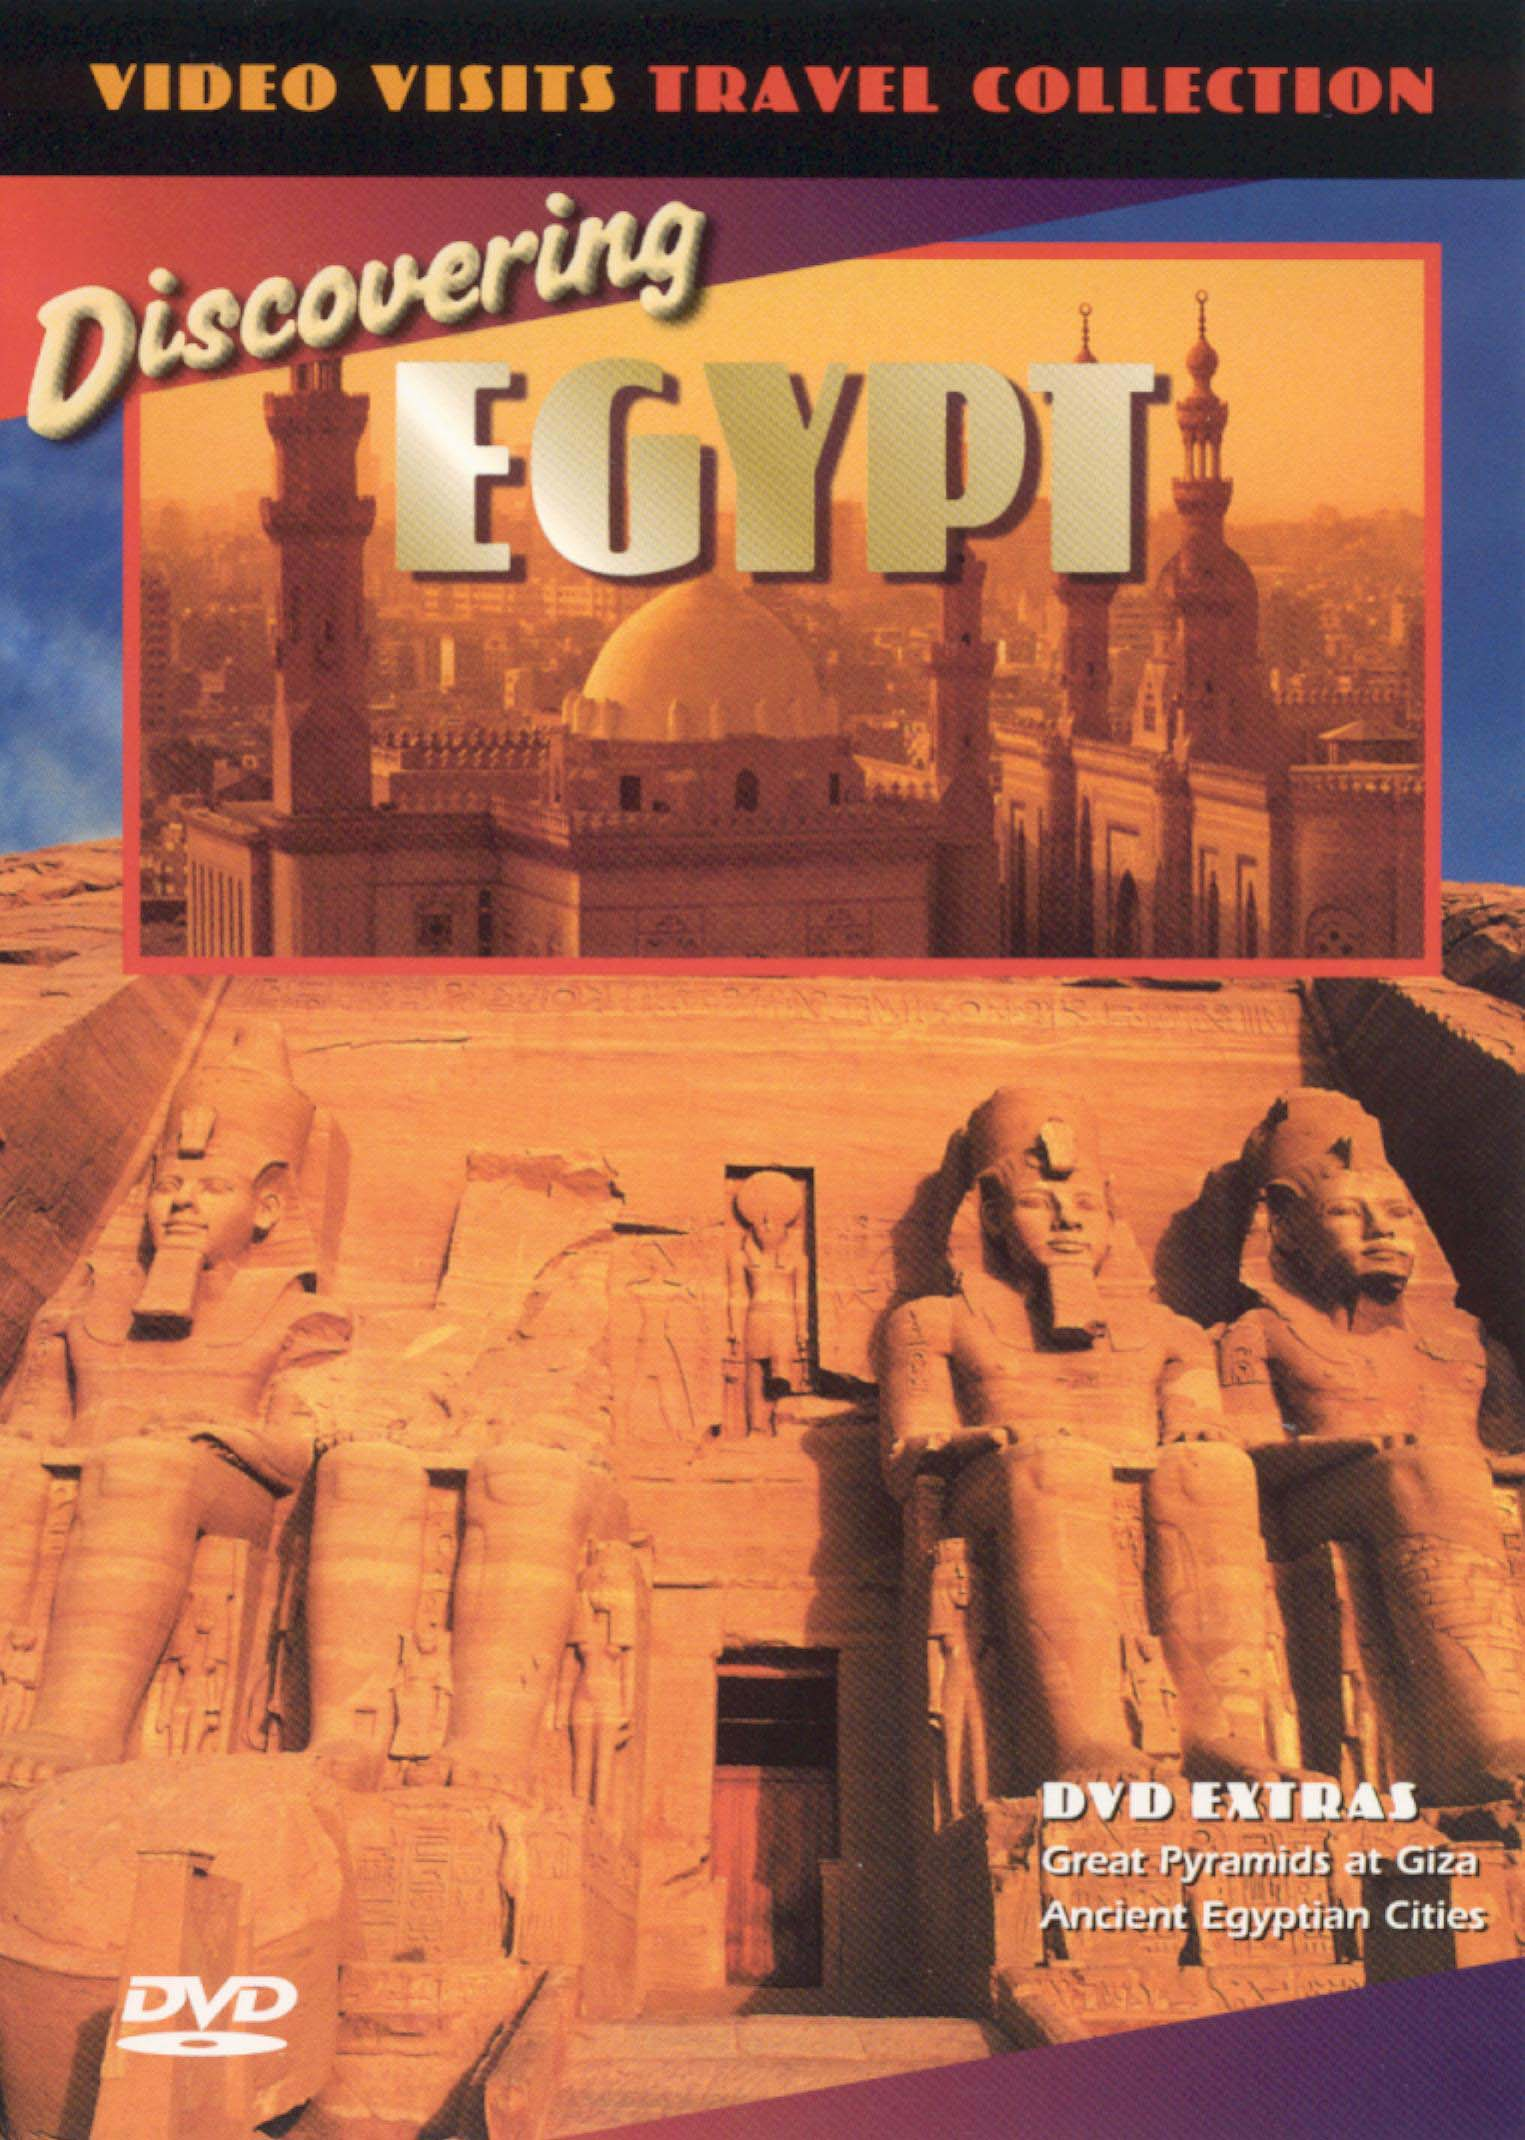 Video Visits Travel Collection: Discovering Egypt